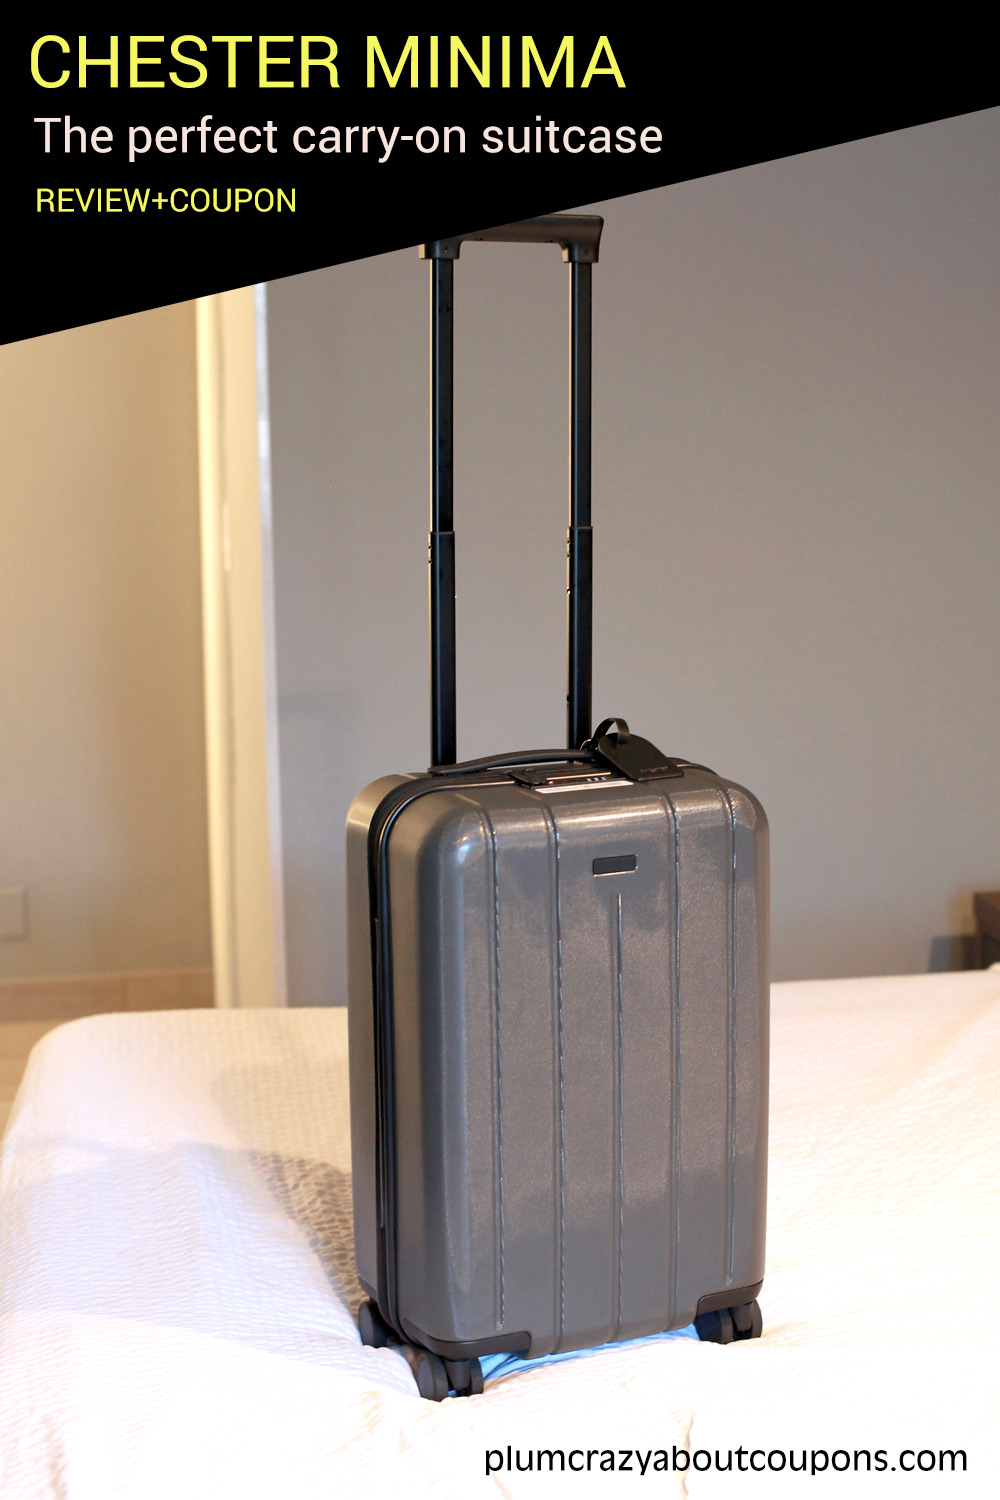 Chester Minima carry-on suitcase.